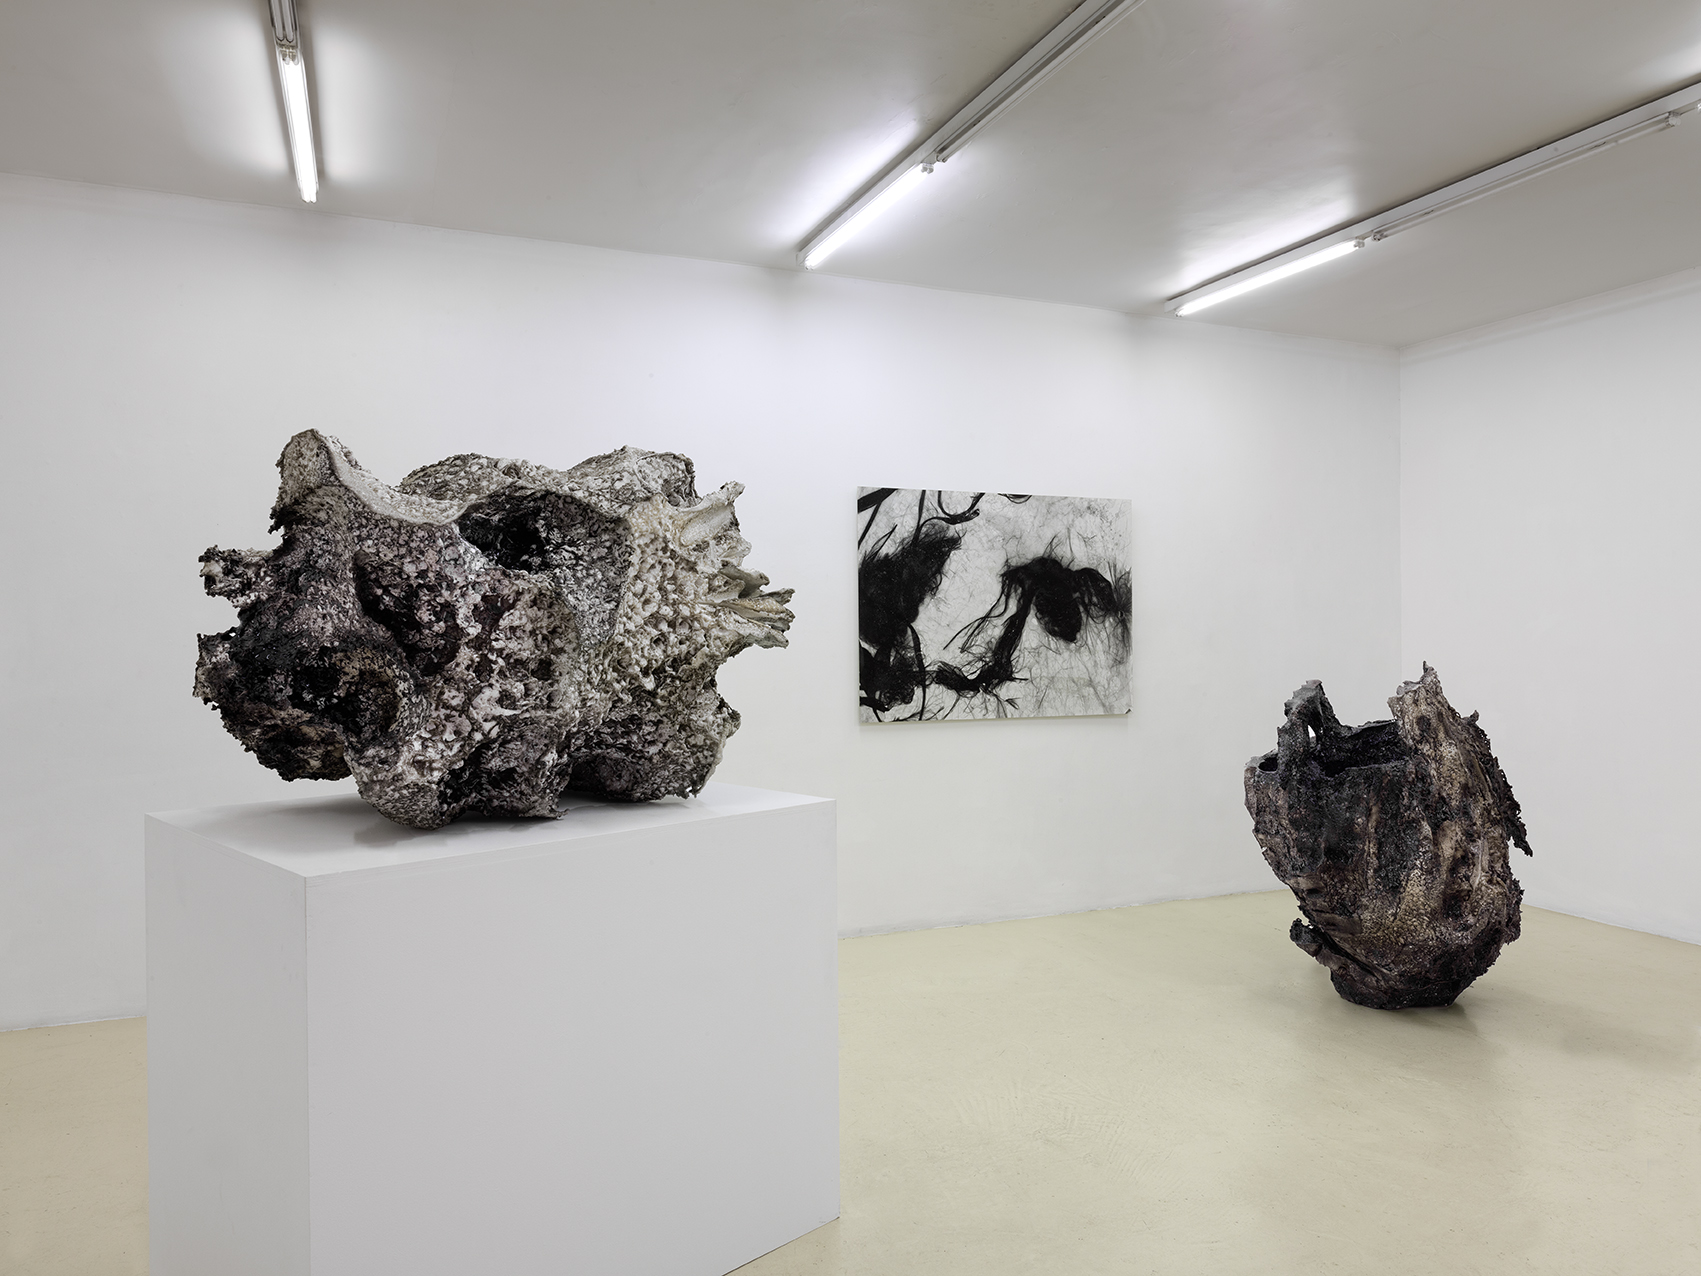 Installation view, galerie Jean Brolly Paris, France